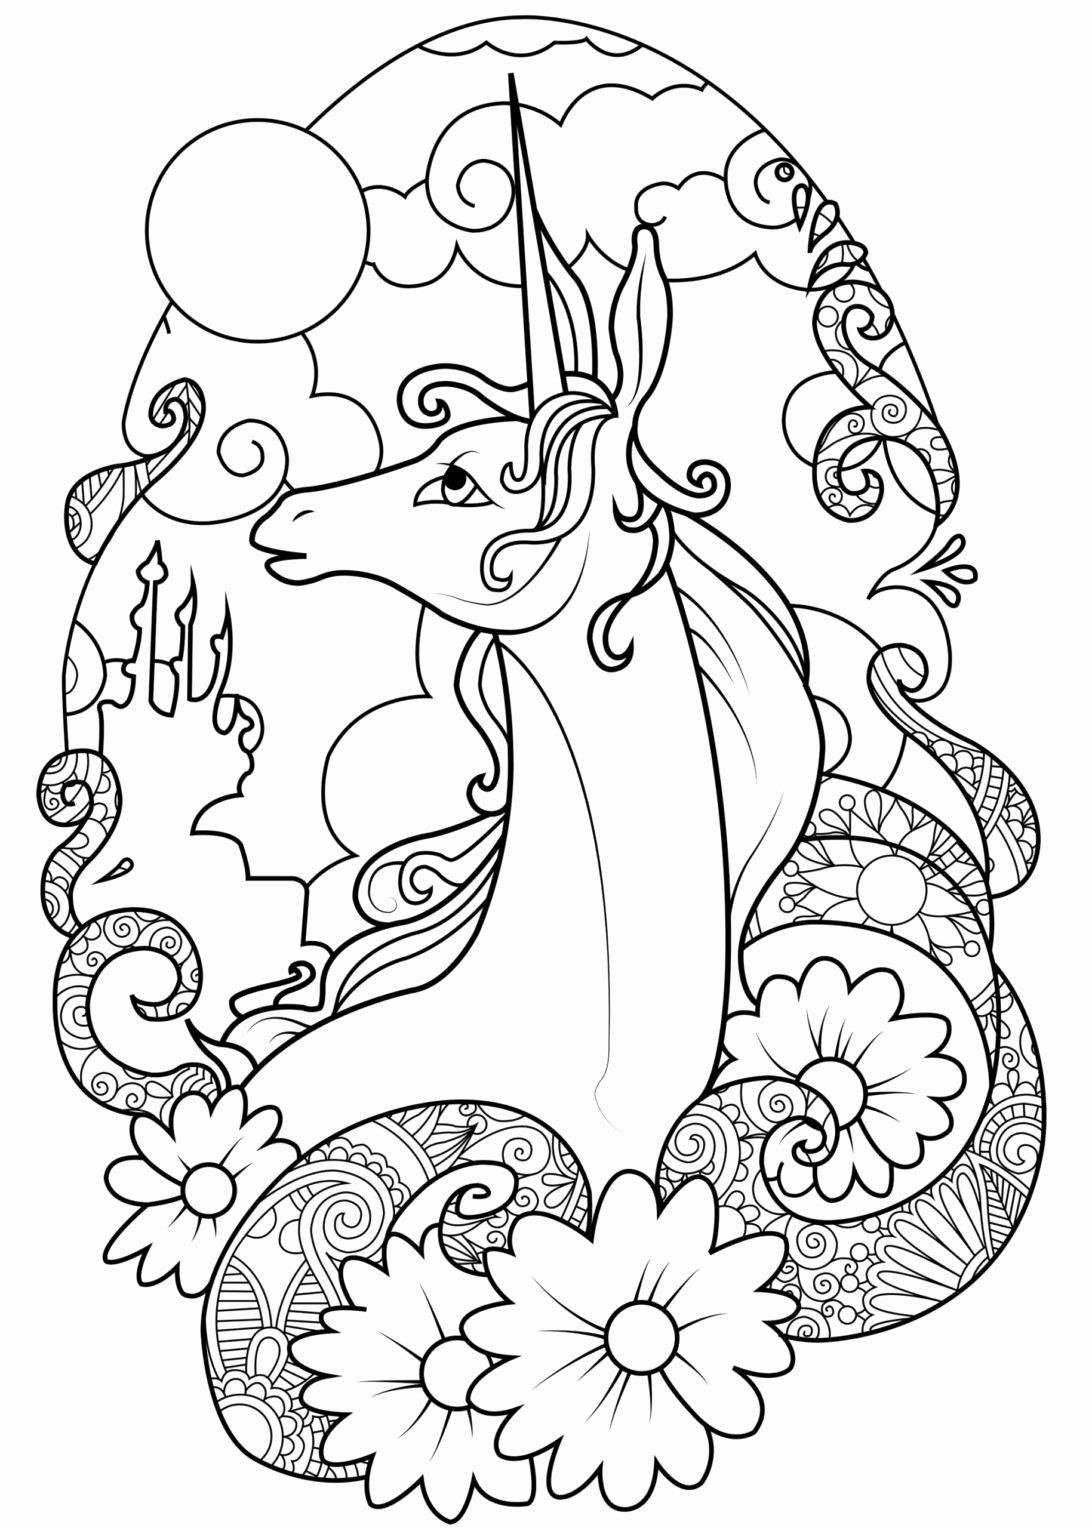 Summer Coloring Pages For Adults Unique Coloring Pages Coloring Crayola Summer For Adults T Unicorn Coloring Pages Dragon Coloring Page Detailed Coloring Pages